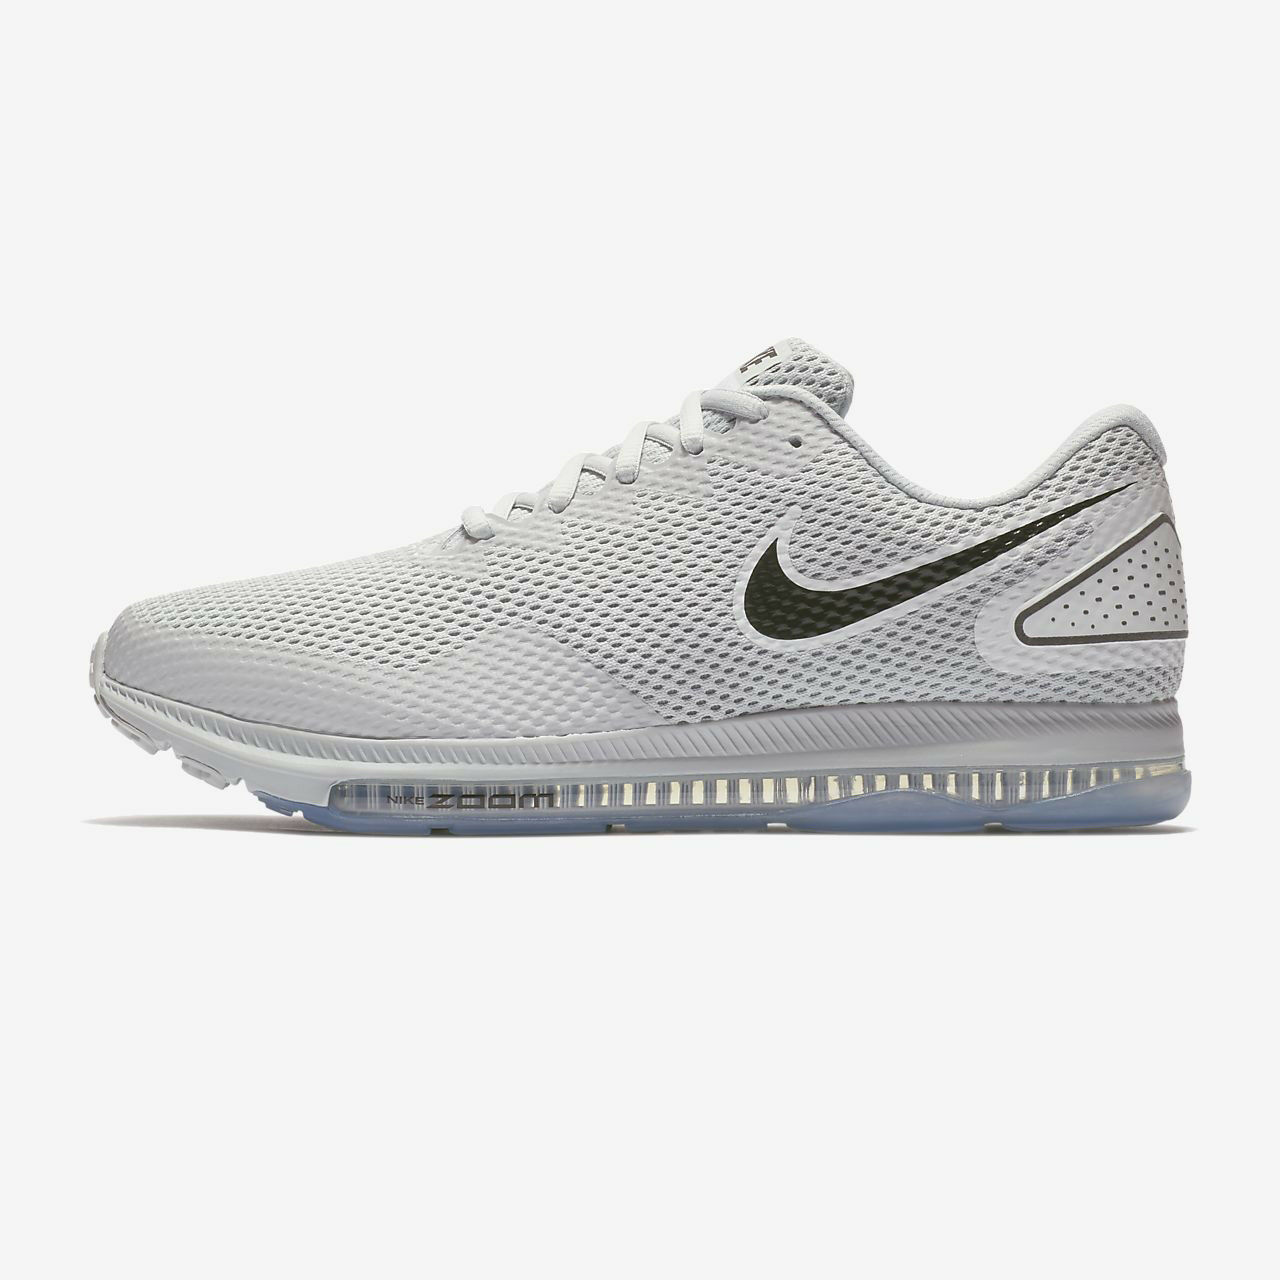 Nike Men Zoom All Out Low 2 II Running shoes Wolf Grey AJ0035-005 US7-11 04'